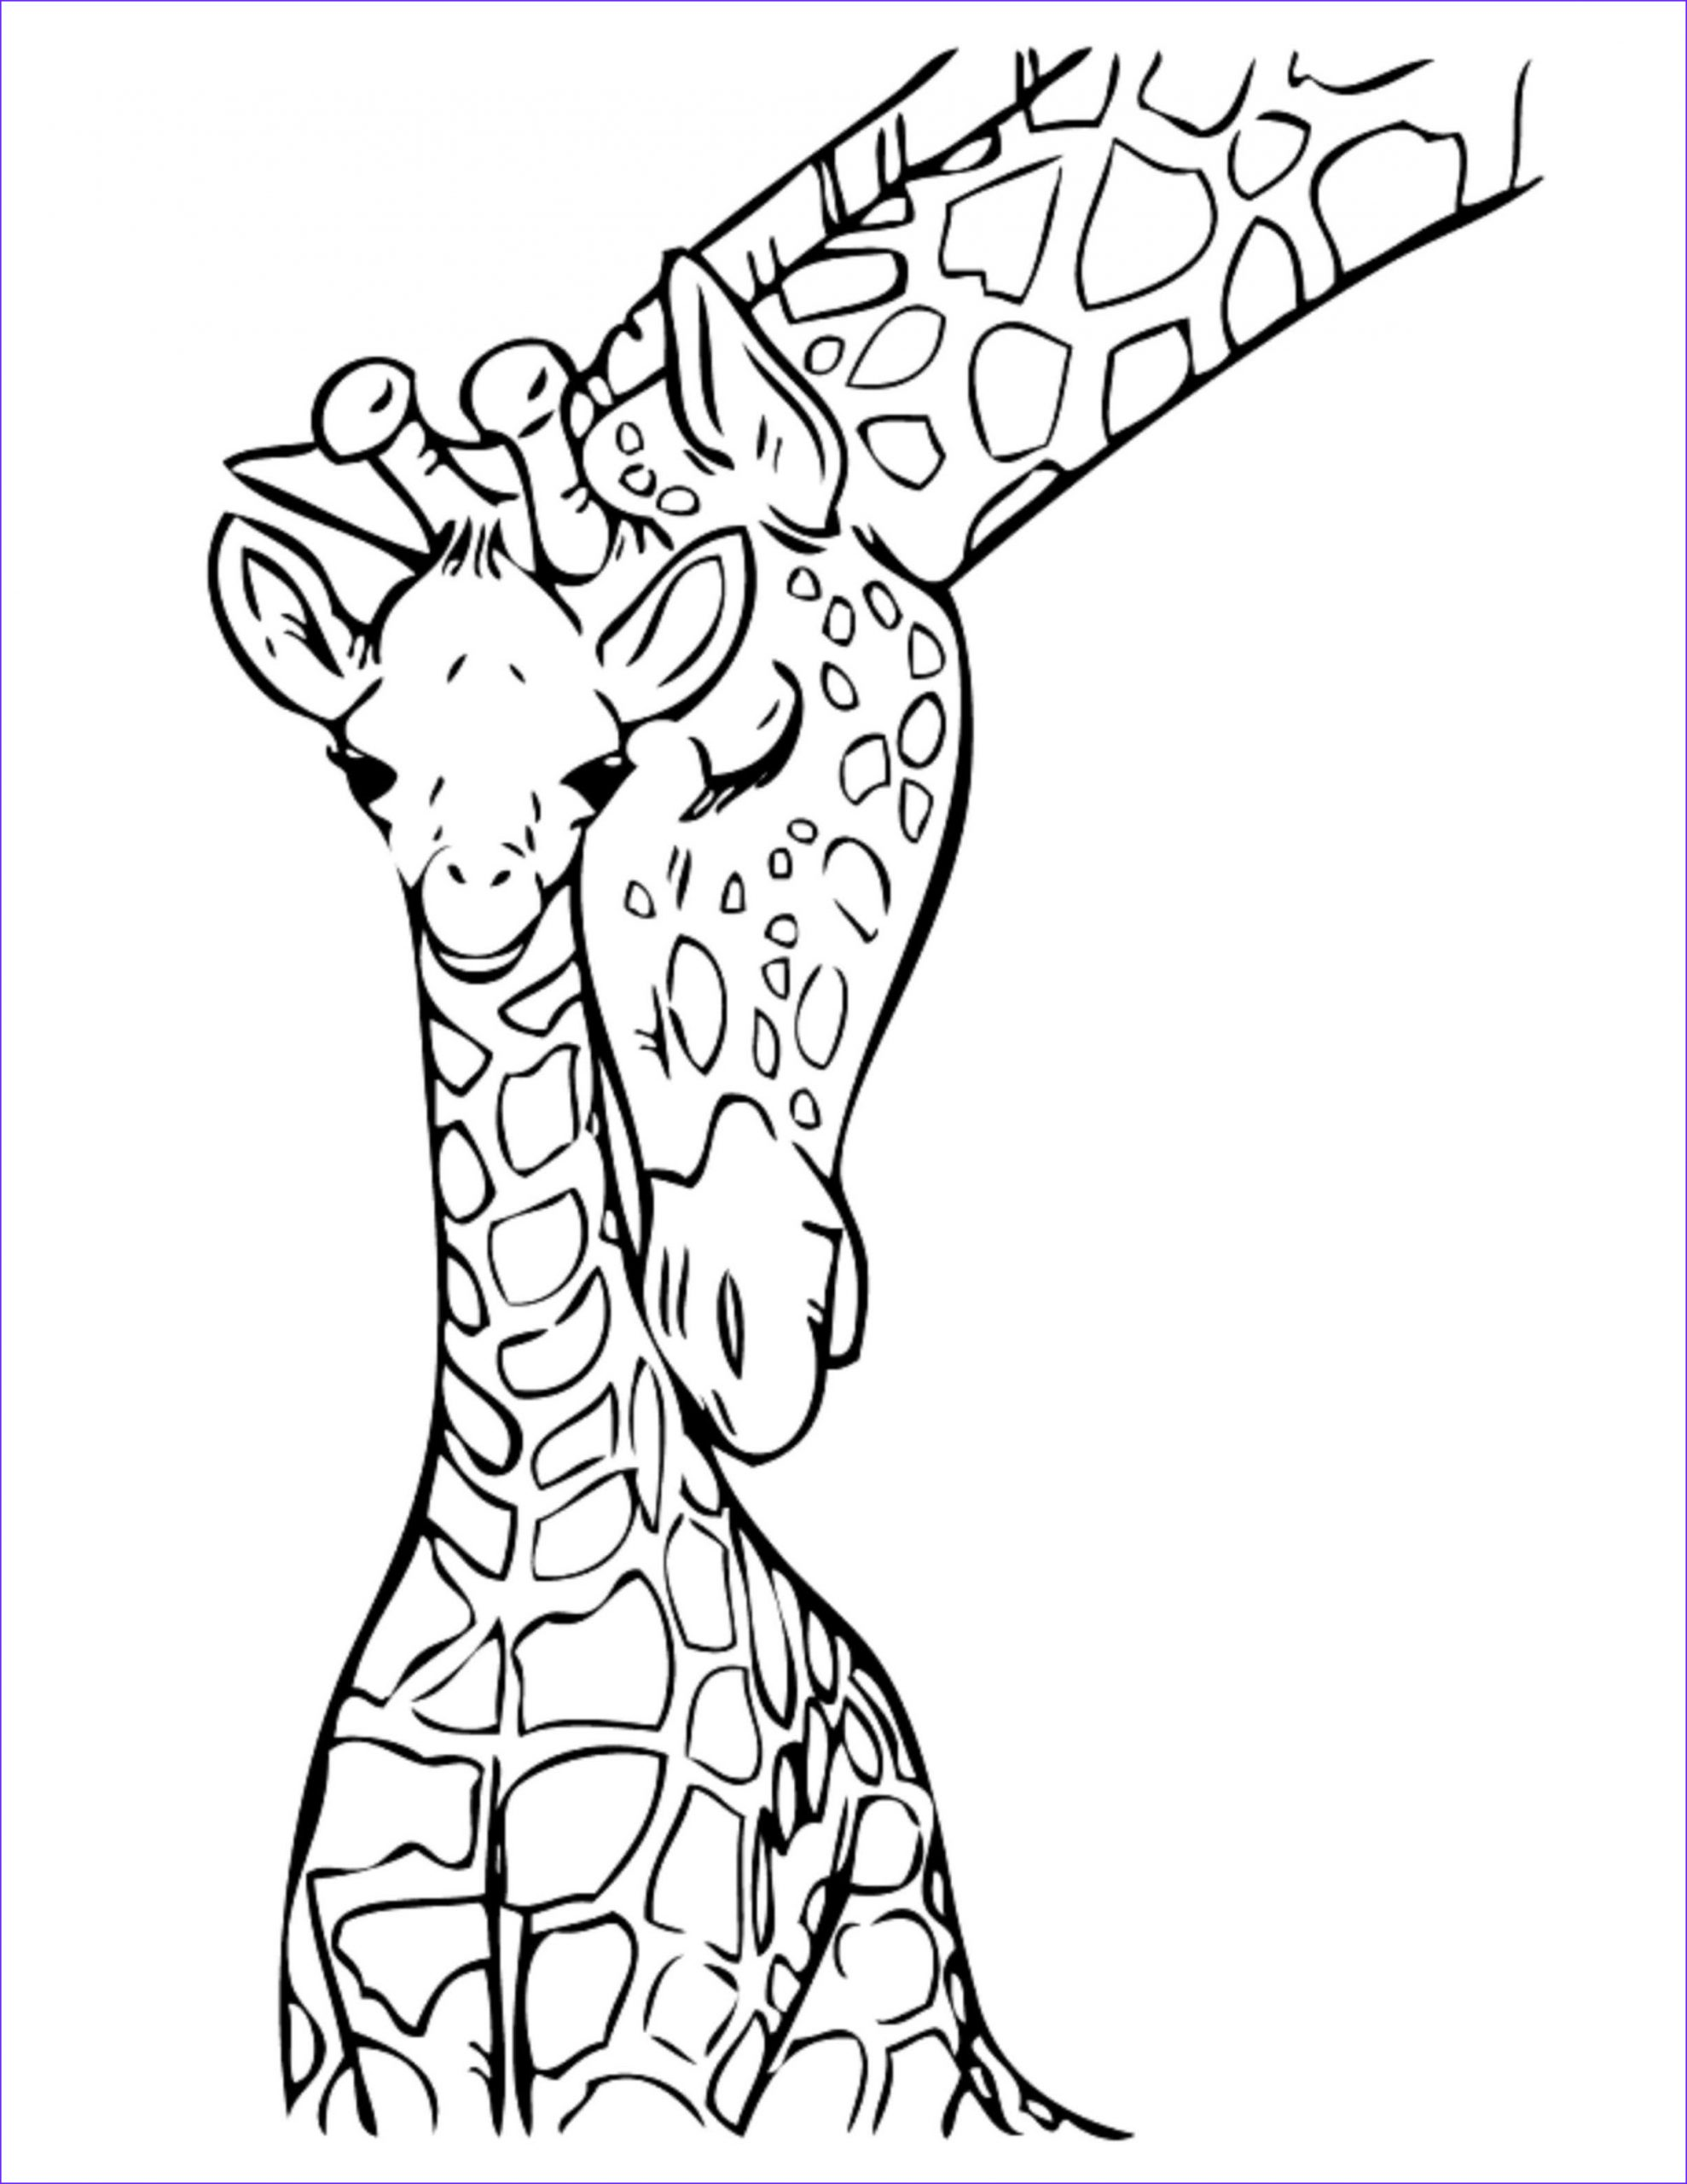 Printable Coloring Page Of Animals Elegant Collection Jungle Coloring Pages Best Coloring Pages for Kids